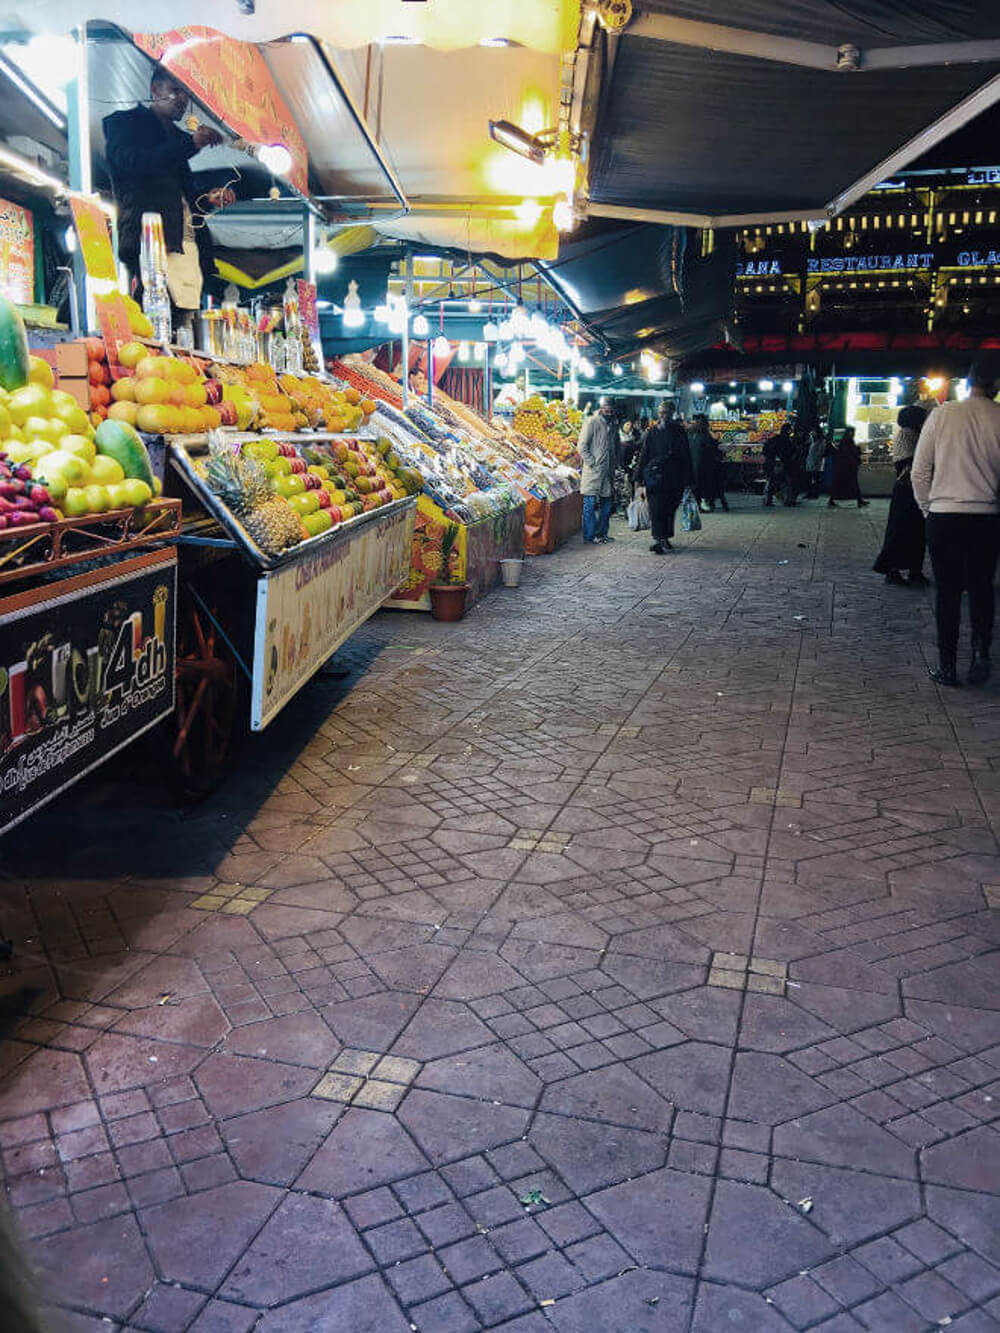 Obststände am Djemnaa el Fna in Marrakesch, Marokko